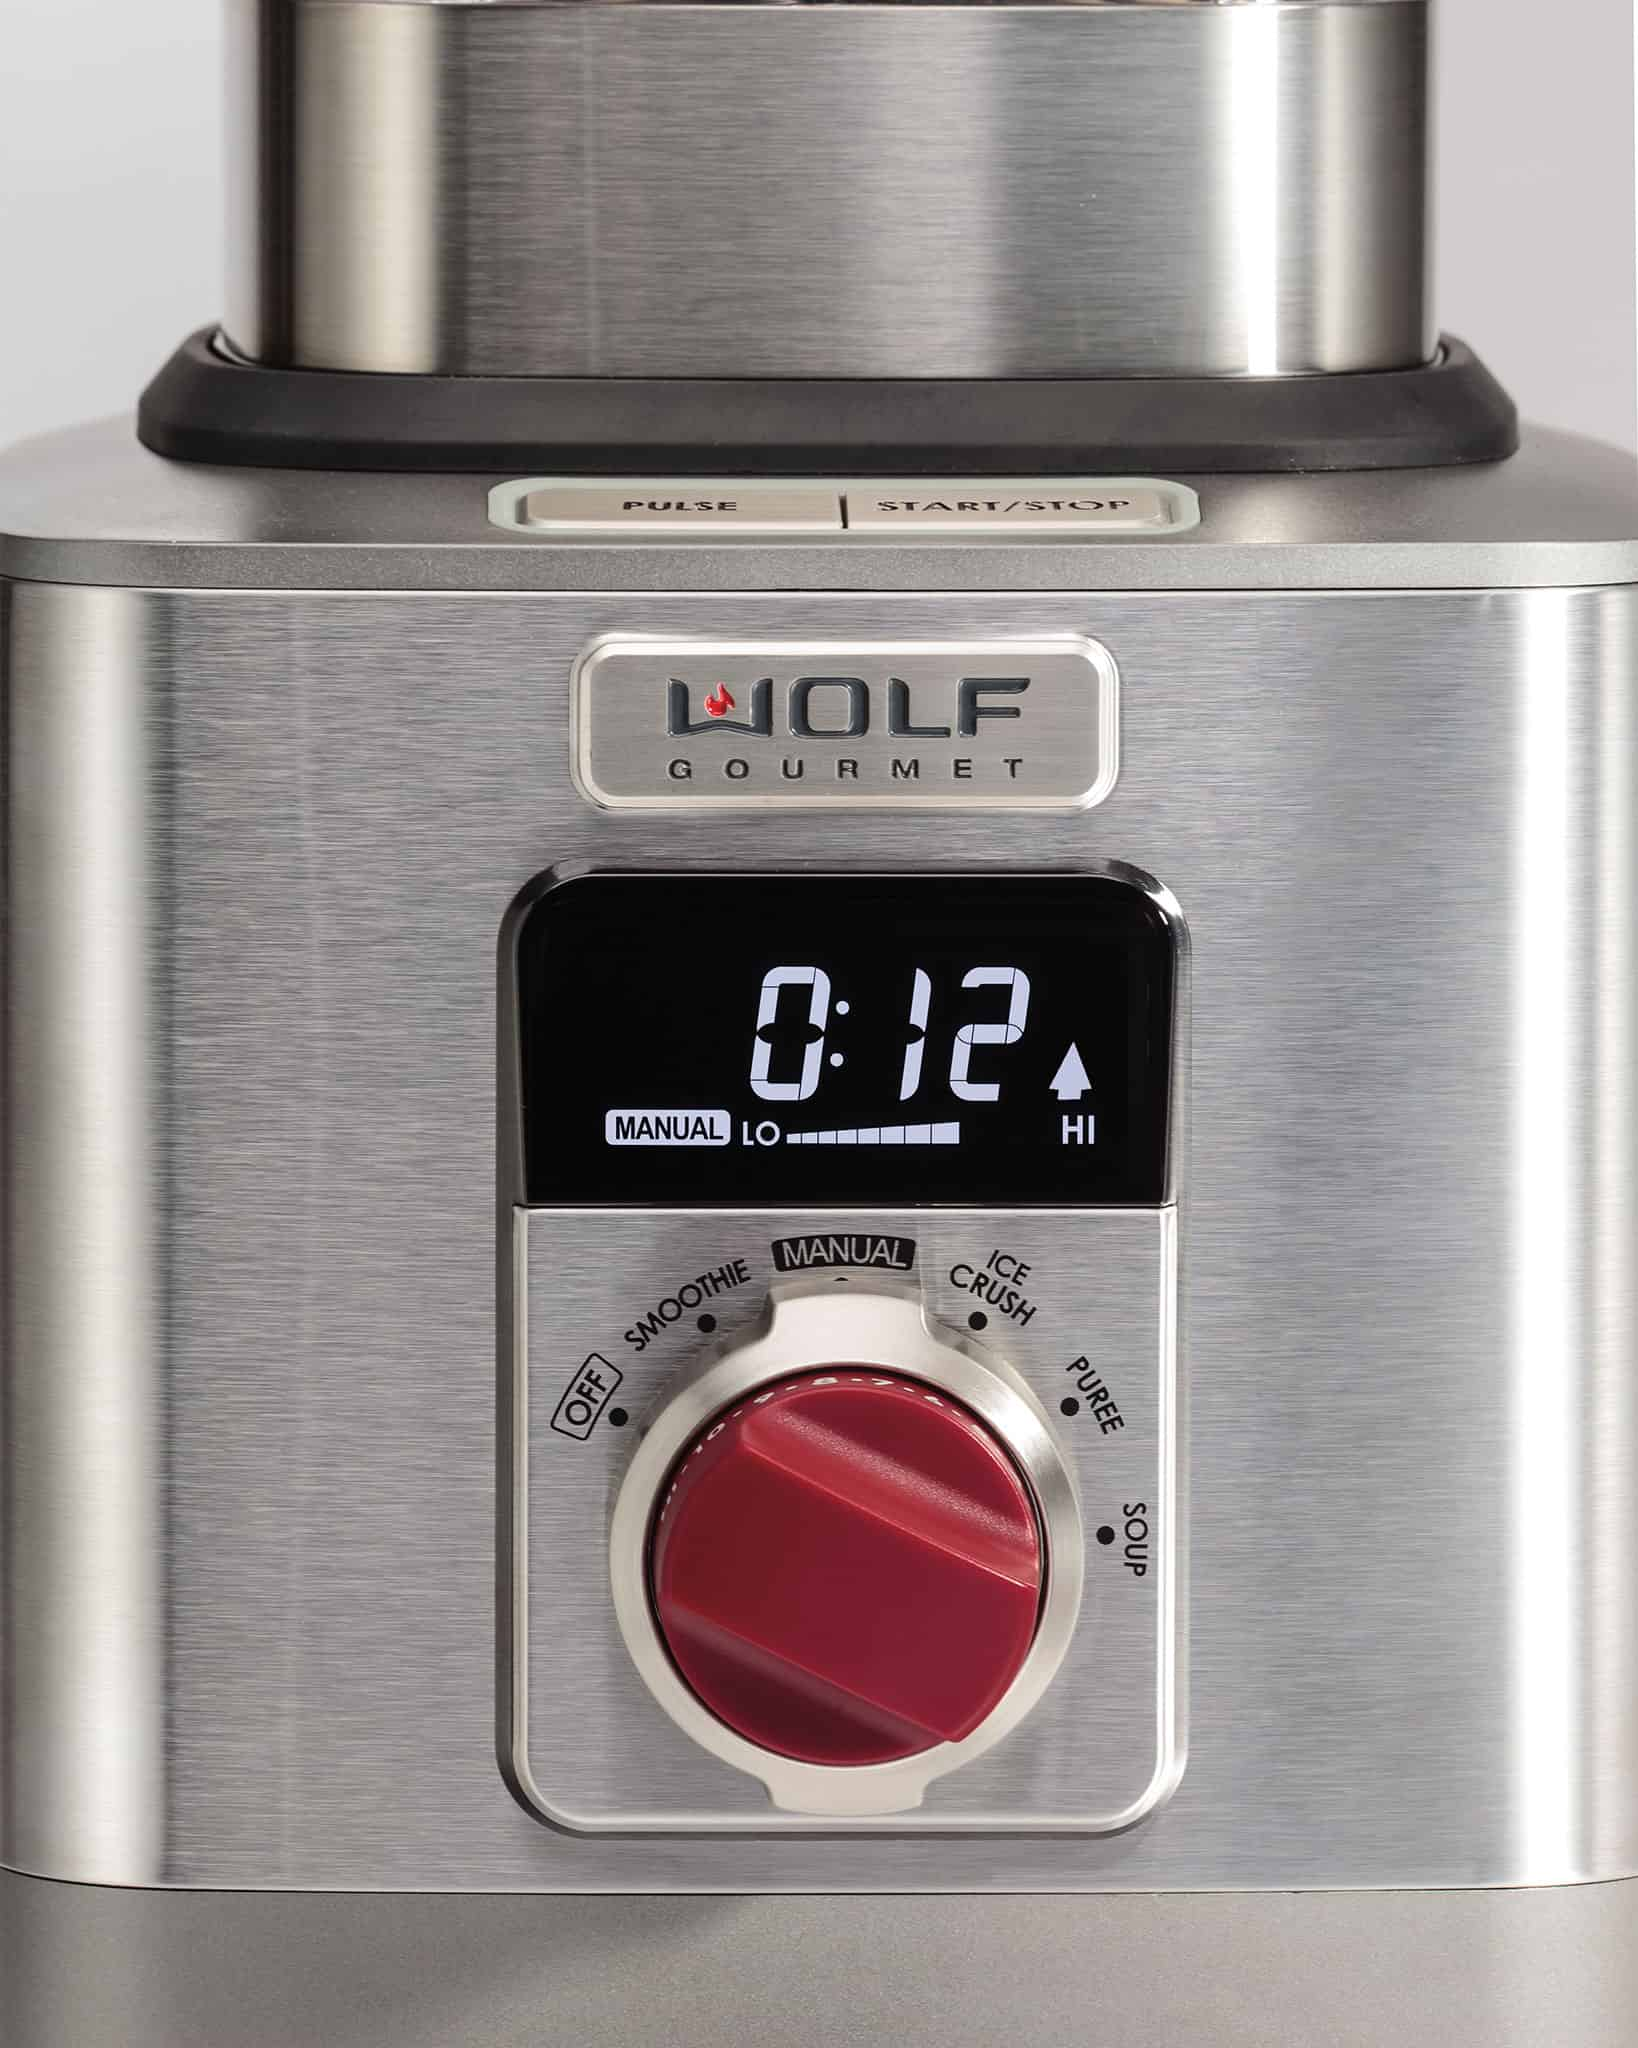 image of Wolf Gourmet High Performance Blender LCD Display